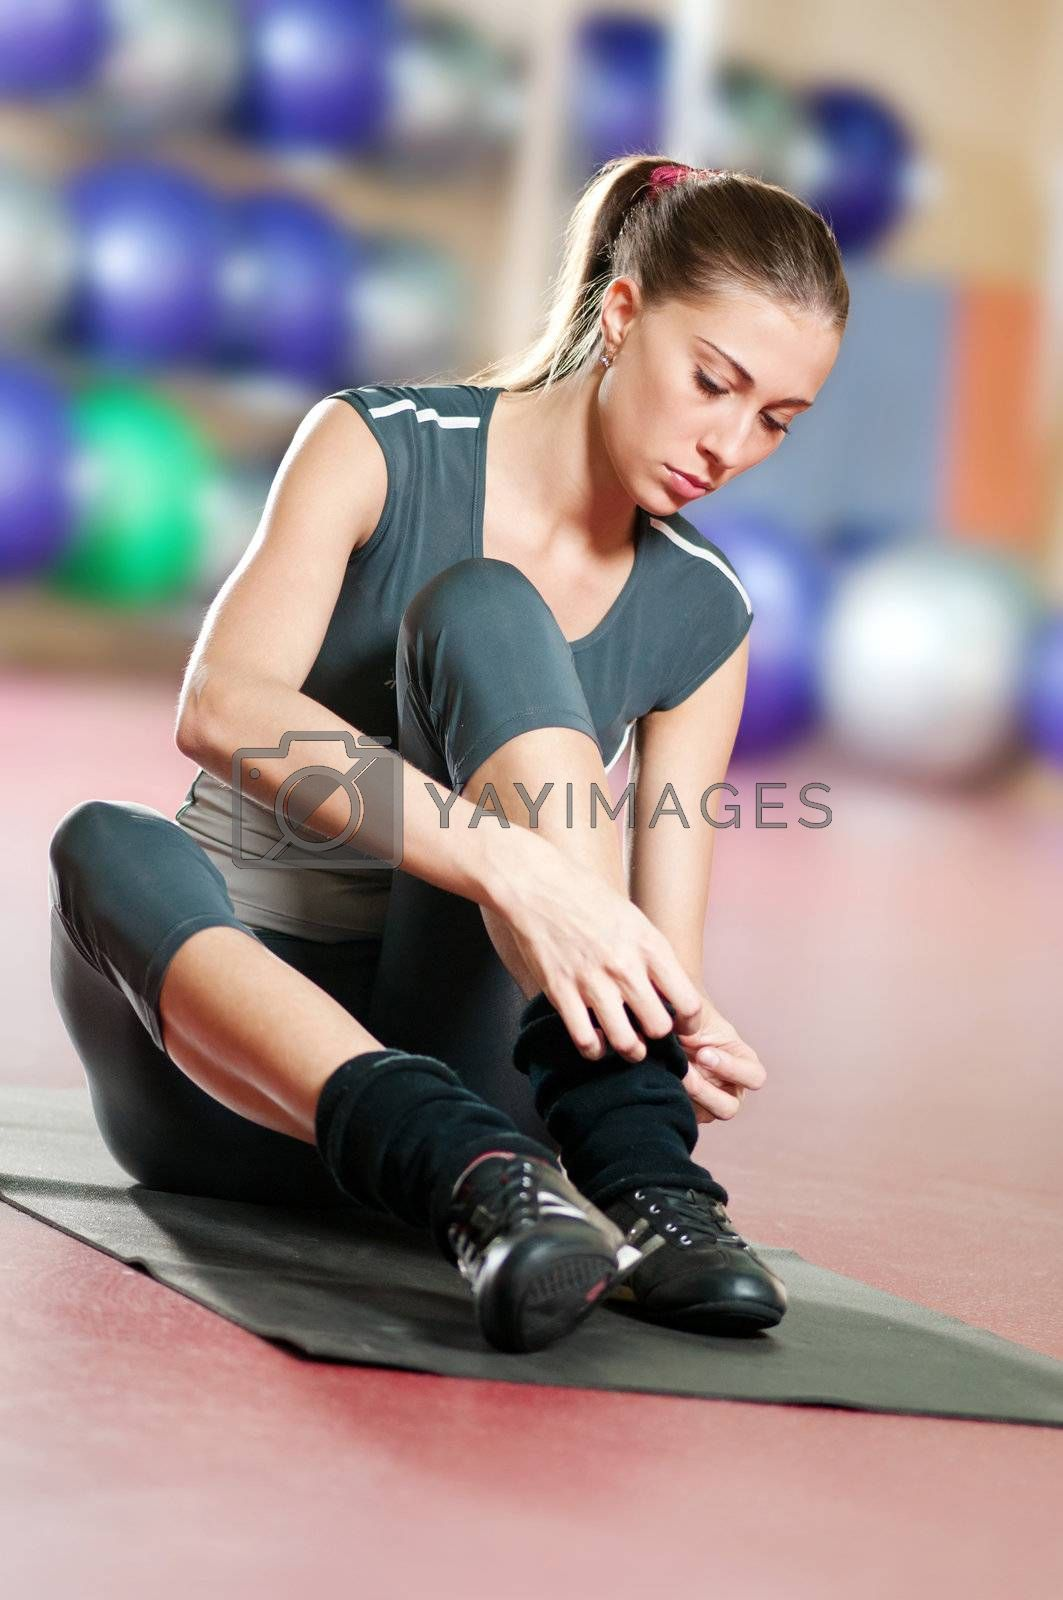 Woman doing stretching fitness exercise at sport gym. Yoga by markin